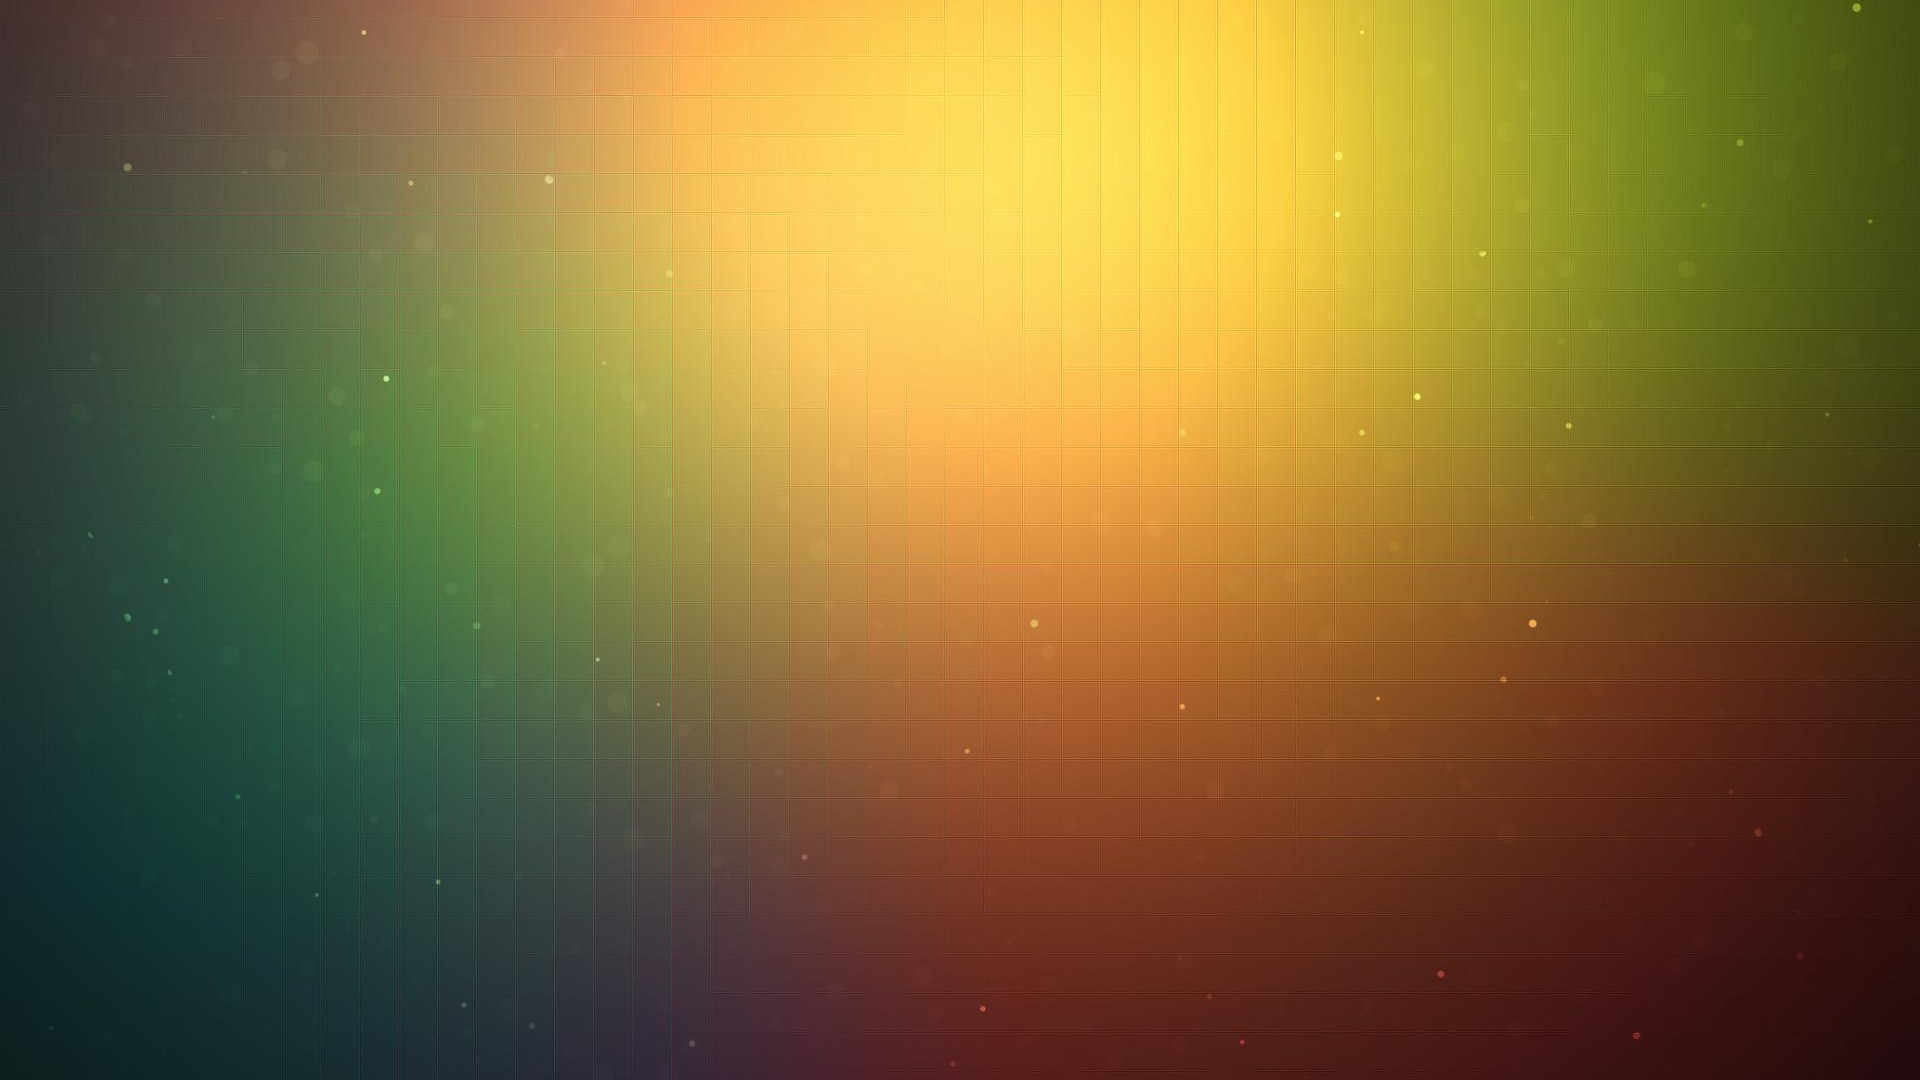 Simple Backgrounds Free Download